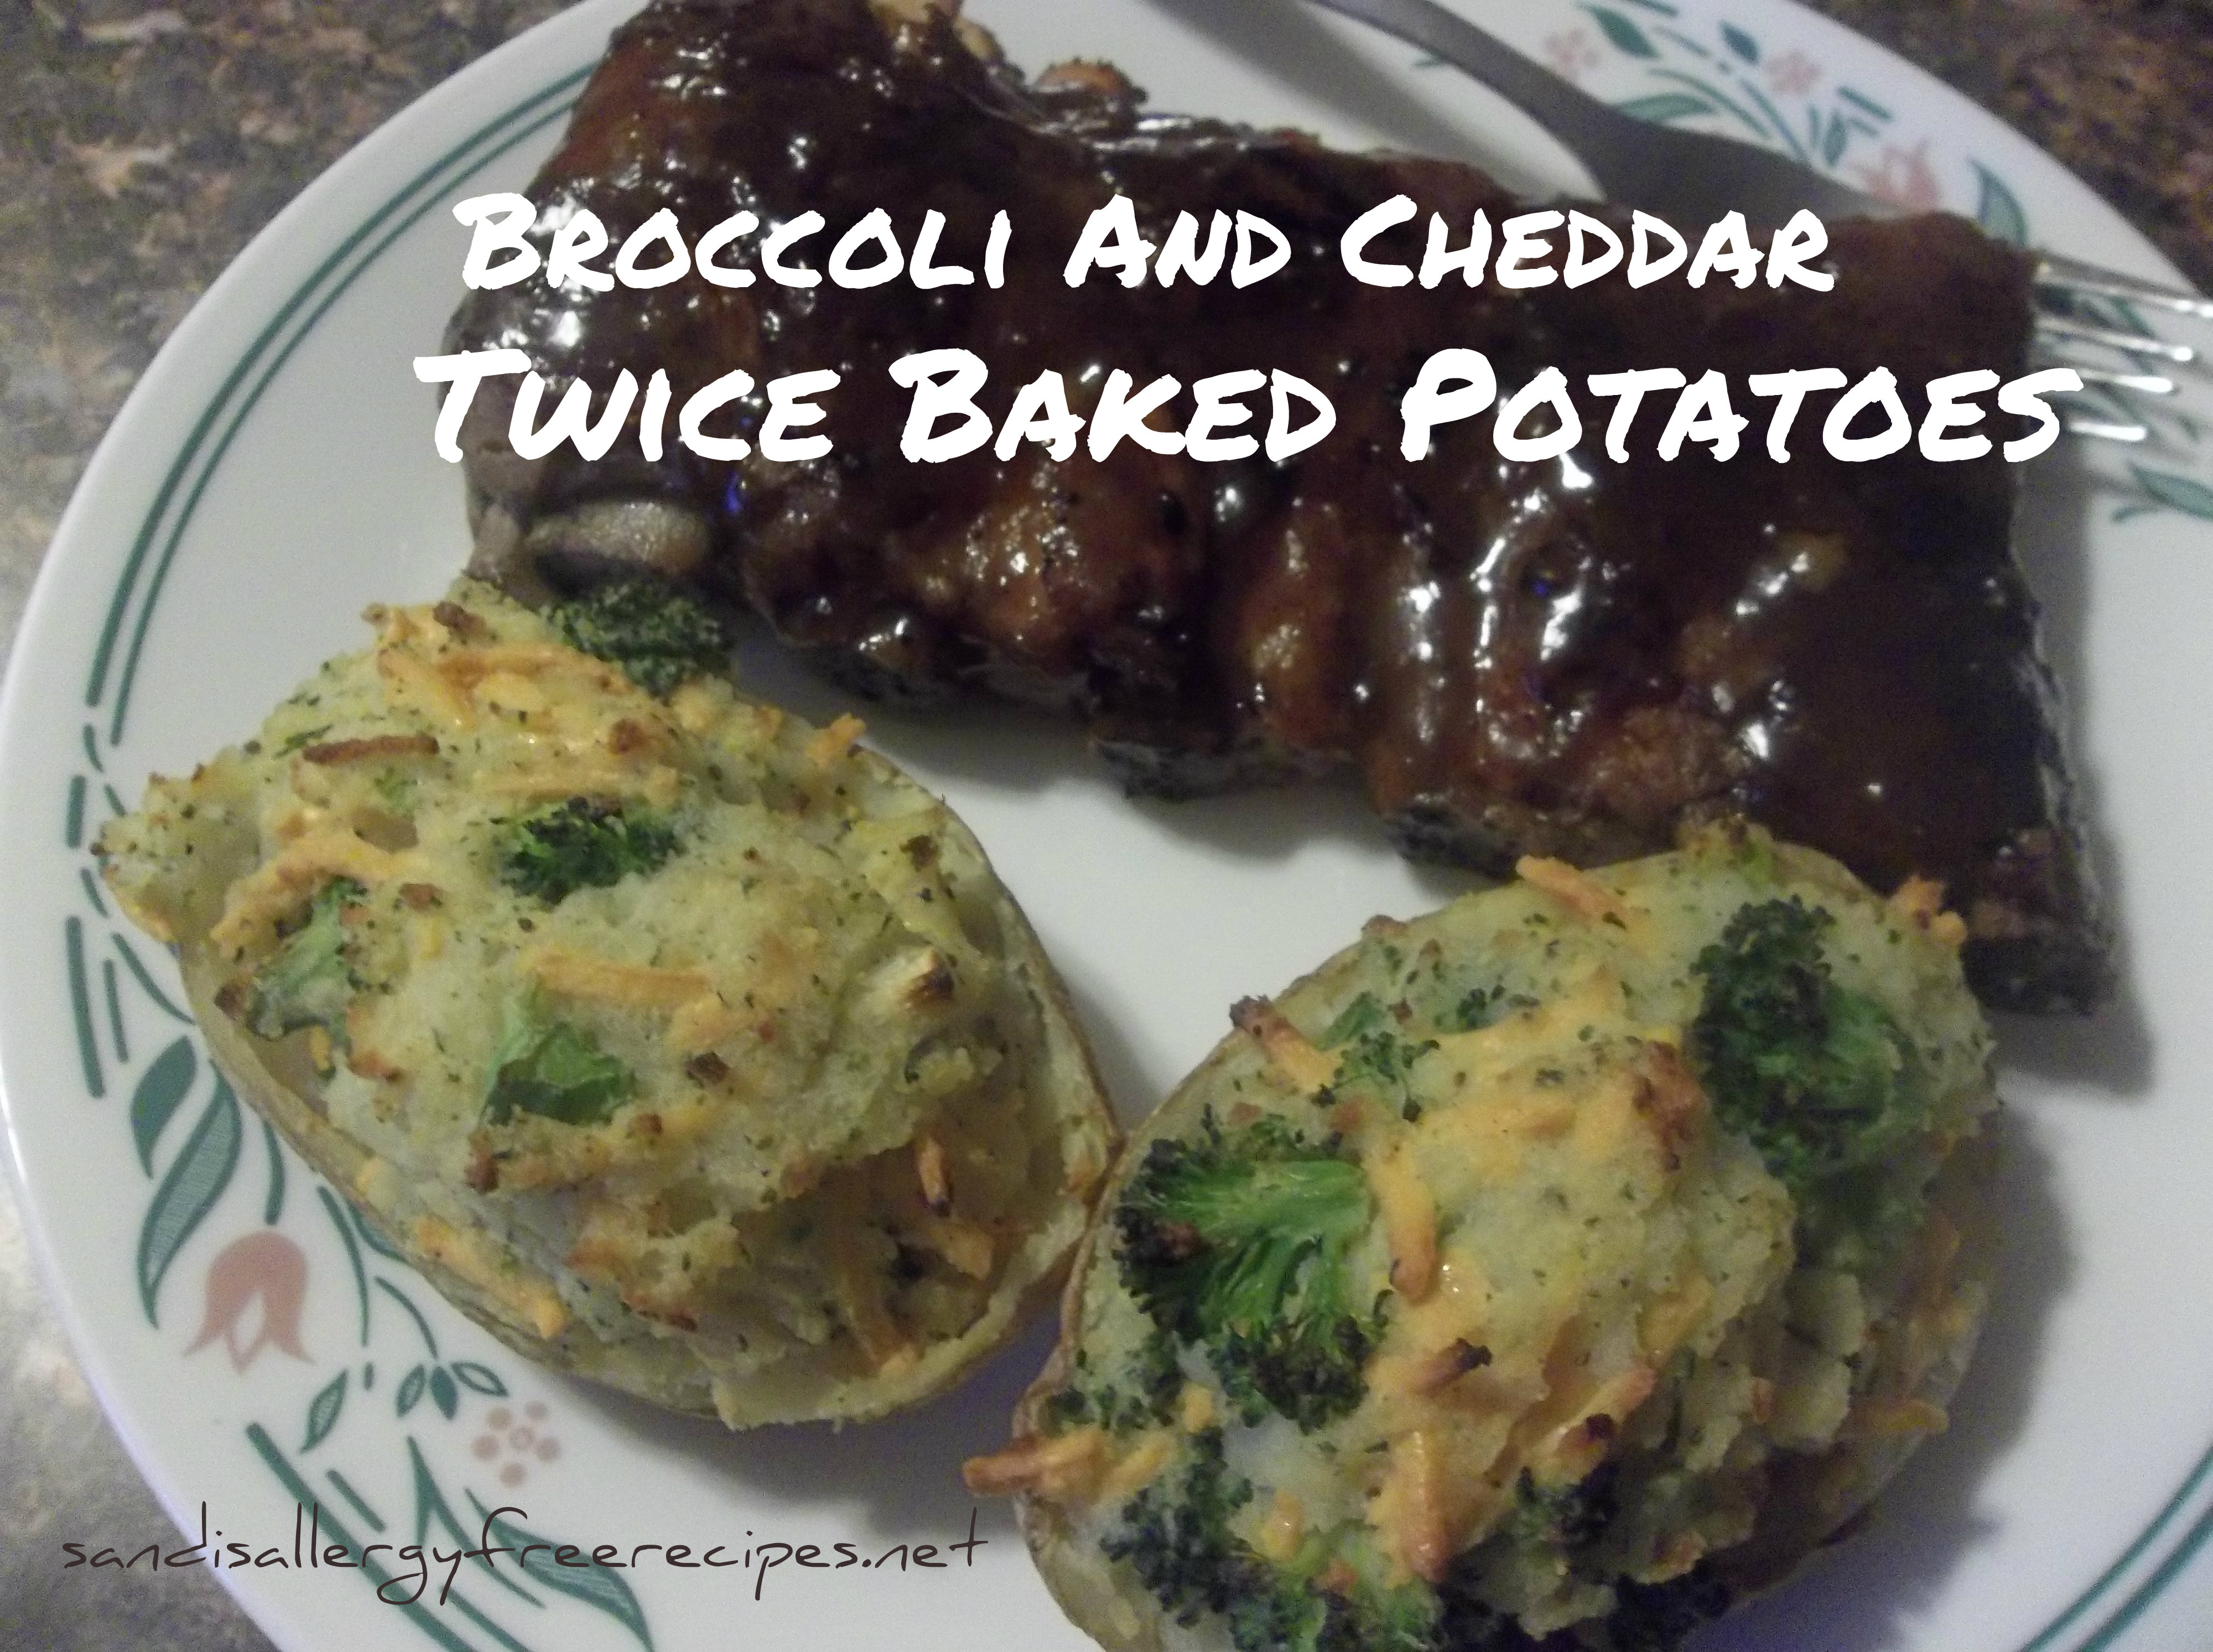 Broccoli & Cheddar Twice Baked Potatoes